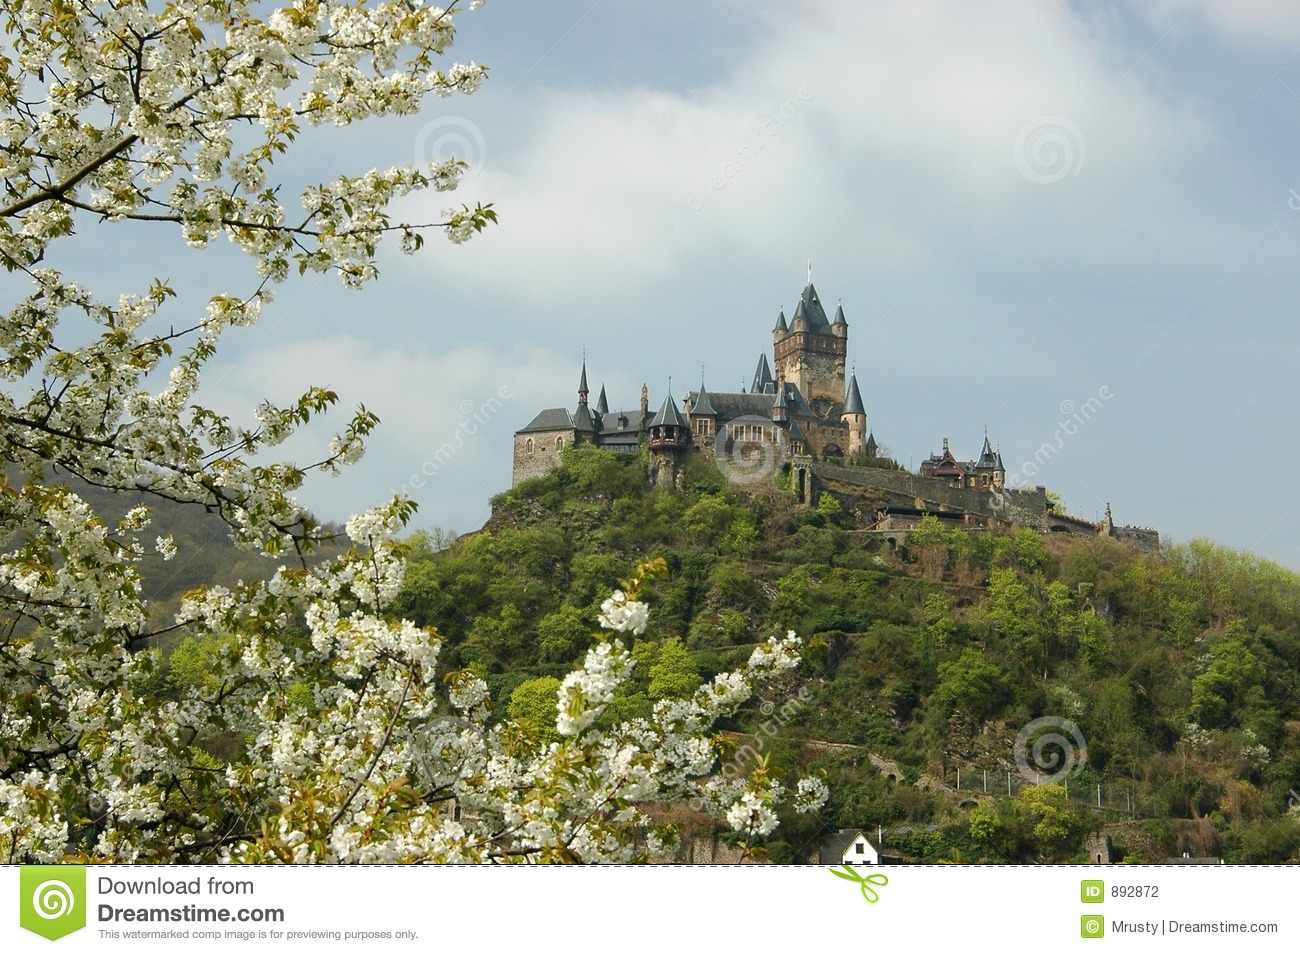 The 15 Most Incredible Castles in Germany - EscapeHere